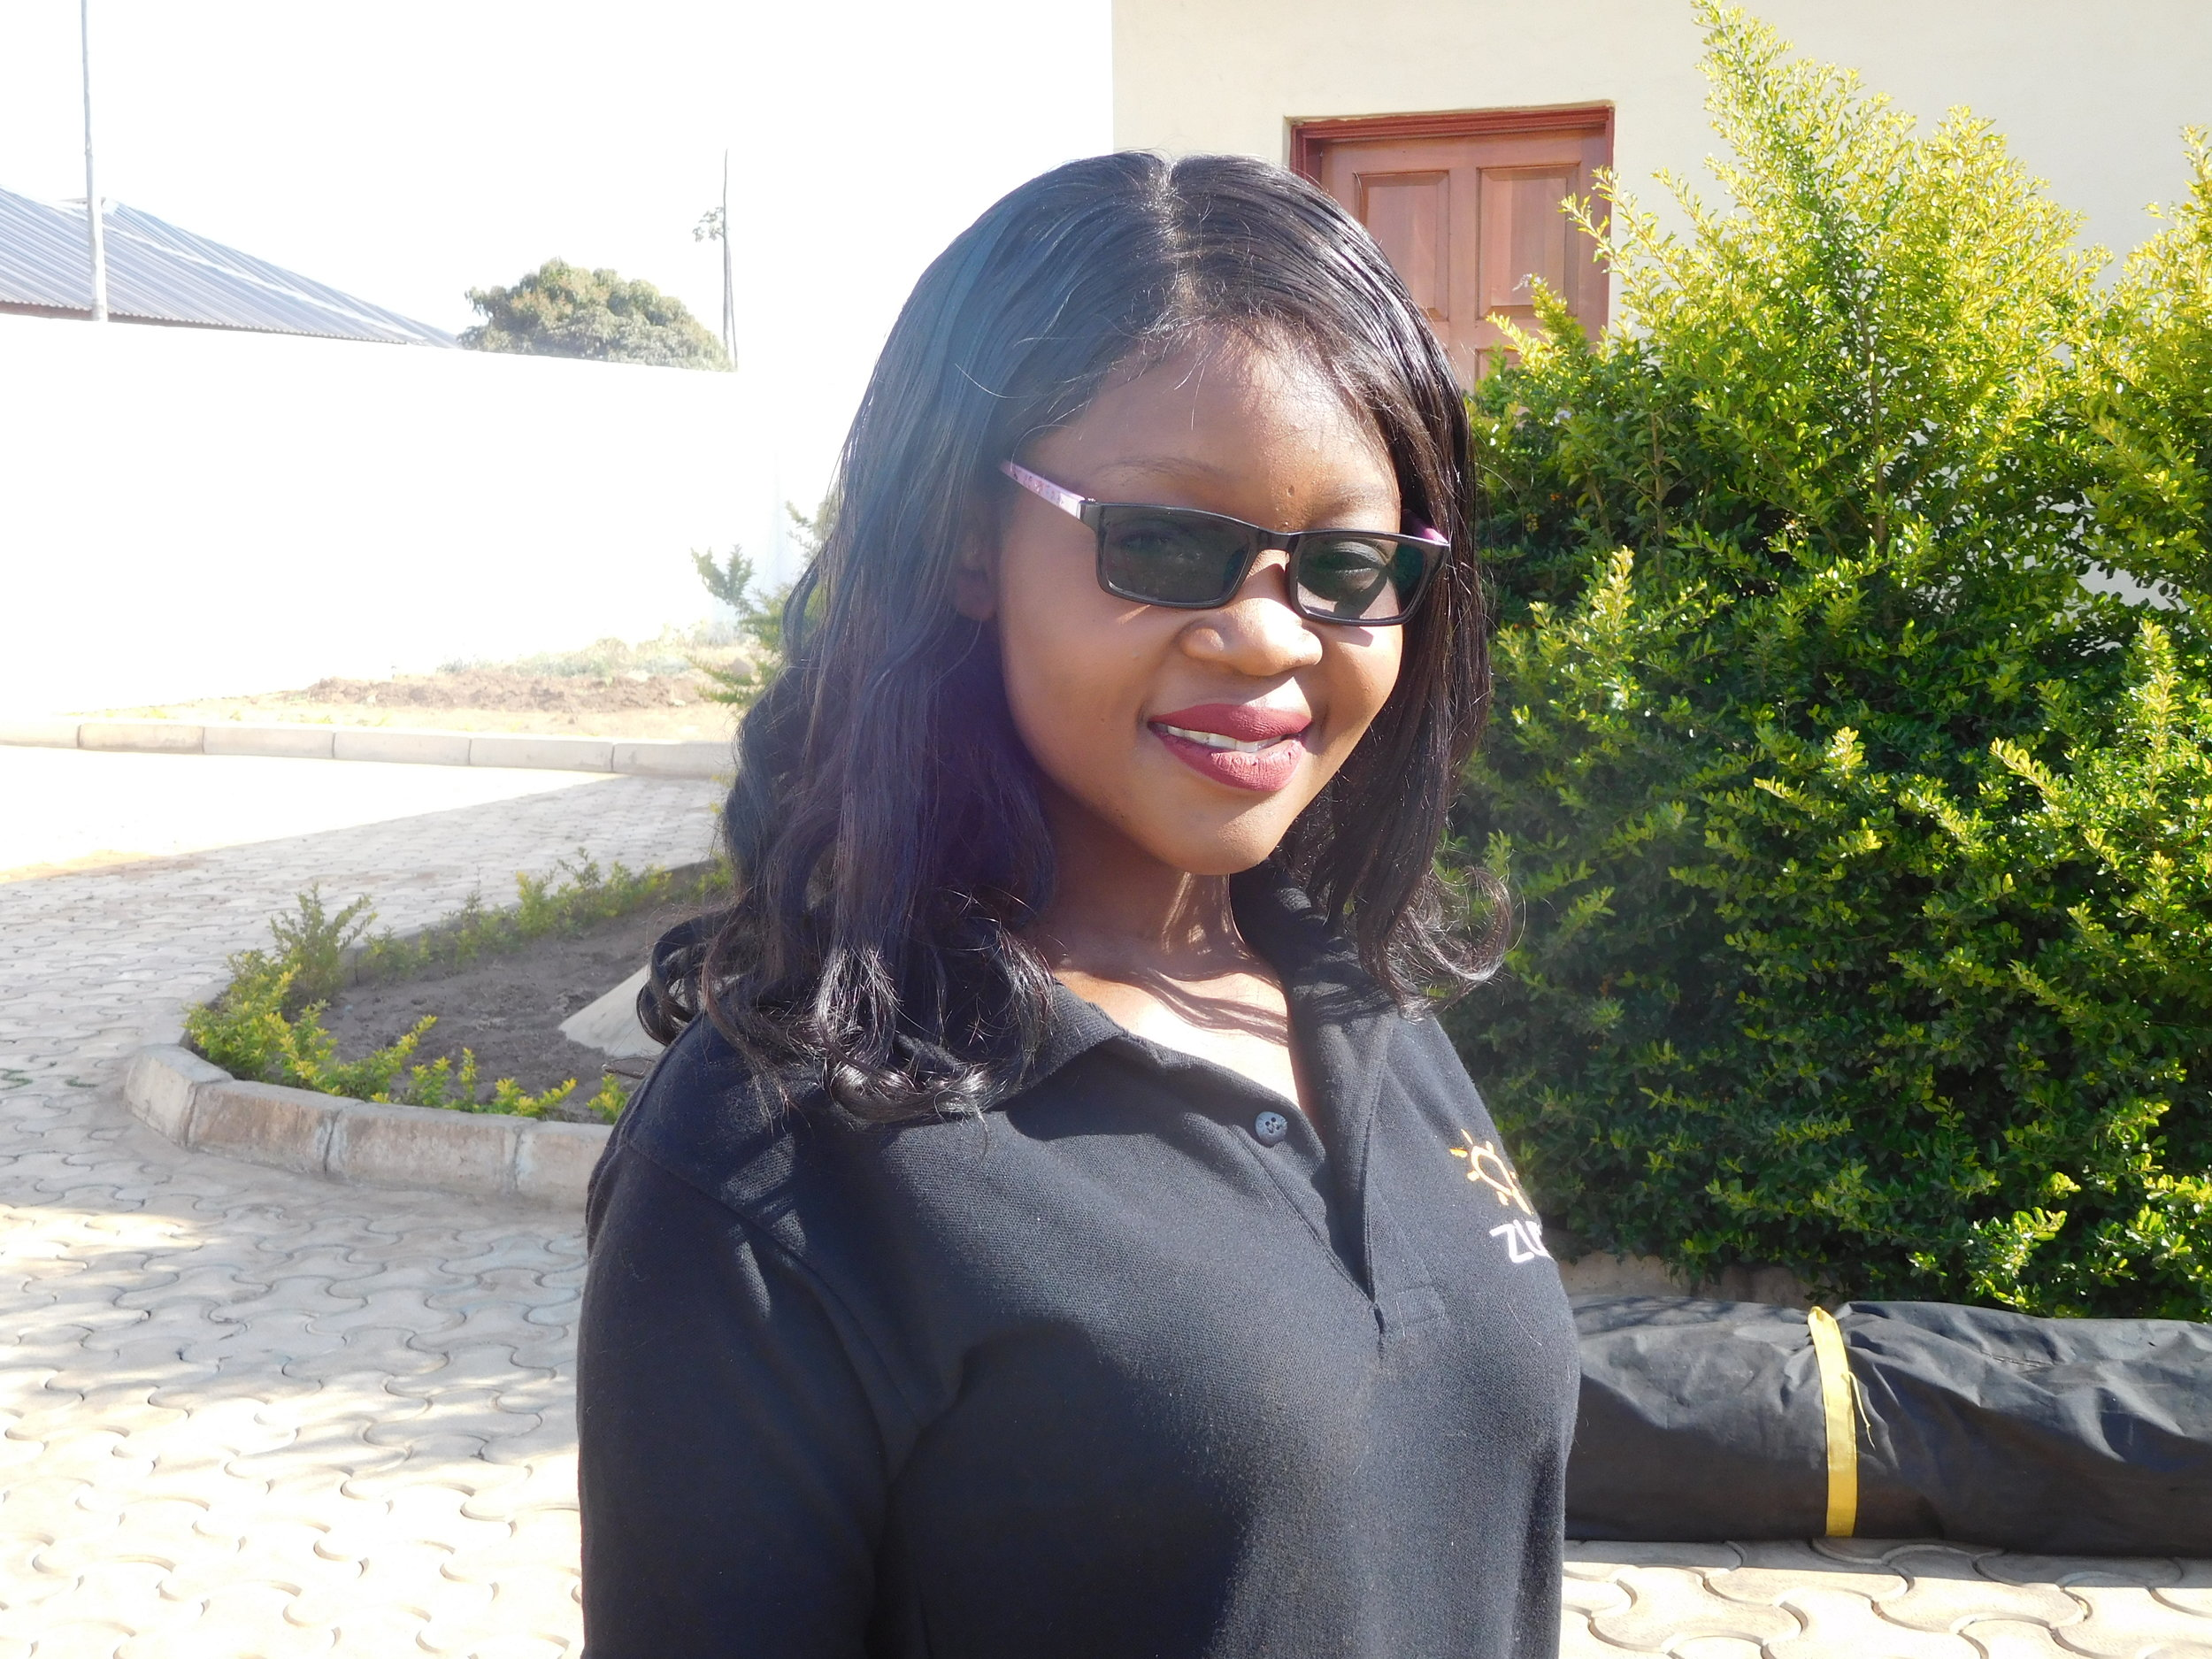 DOREEN ZULU KALISHA    I.T INTERN   Doreen is a committed and passionate lady who teaches herself what is necessary to stay on top of things and persistent when faced with a challenge. Doreen holds a Bachelor's Degree in Information Technology from The University of Malawi, The Polytechnic.